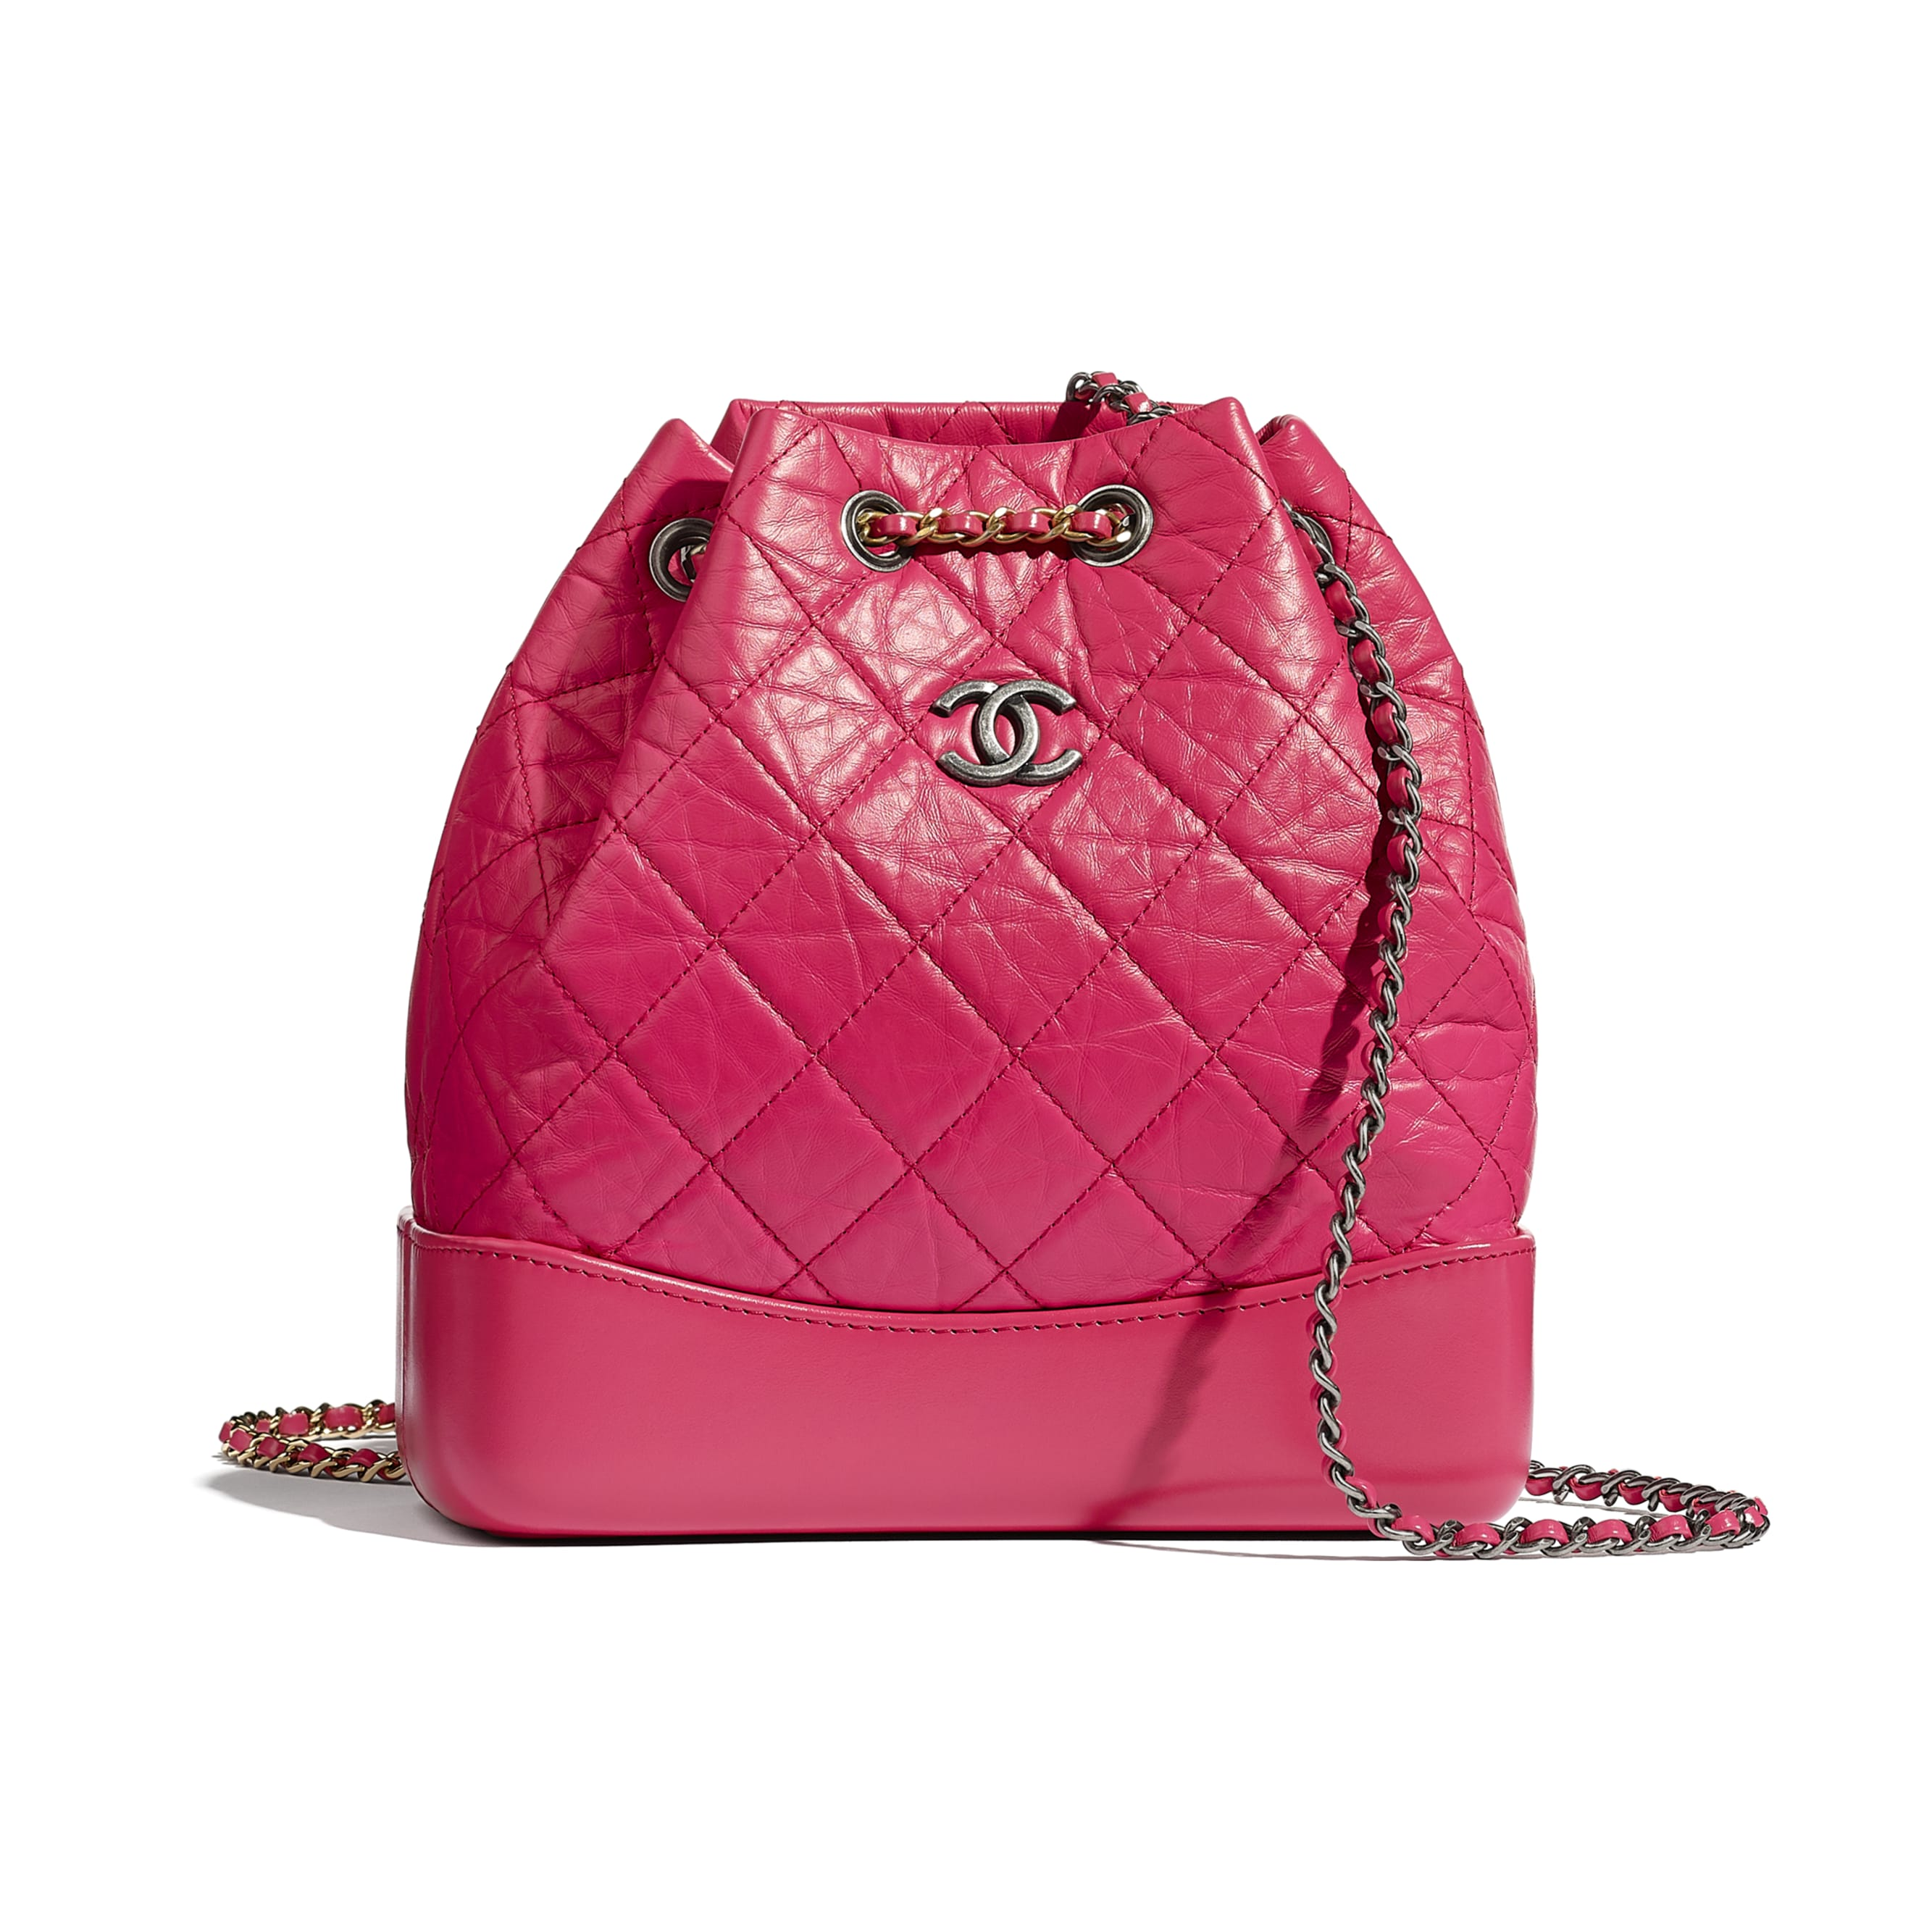 CHANEL'S GABRIELLE Small Backpack - Pink - Aged Calfskin, Smooth Calfskin, Gold-Tone, Silver-Tone & Ruthenium-Finish Metal - CHANEL - Default view - see standard sized version